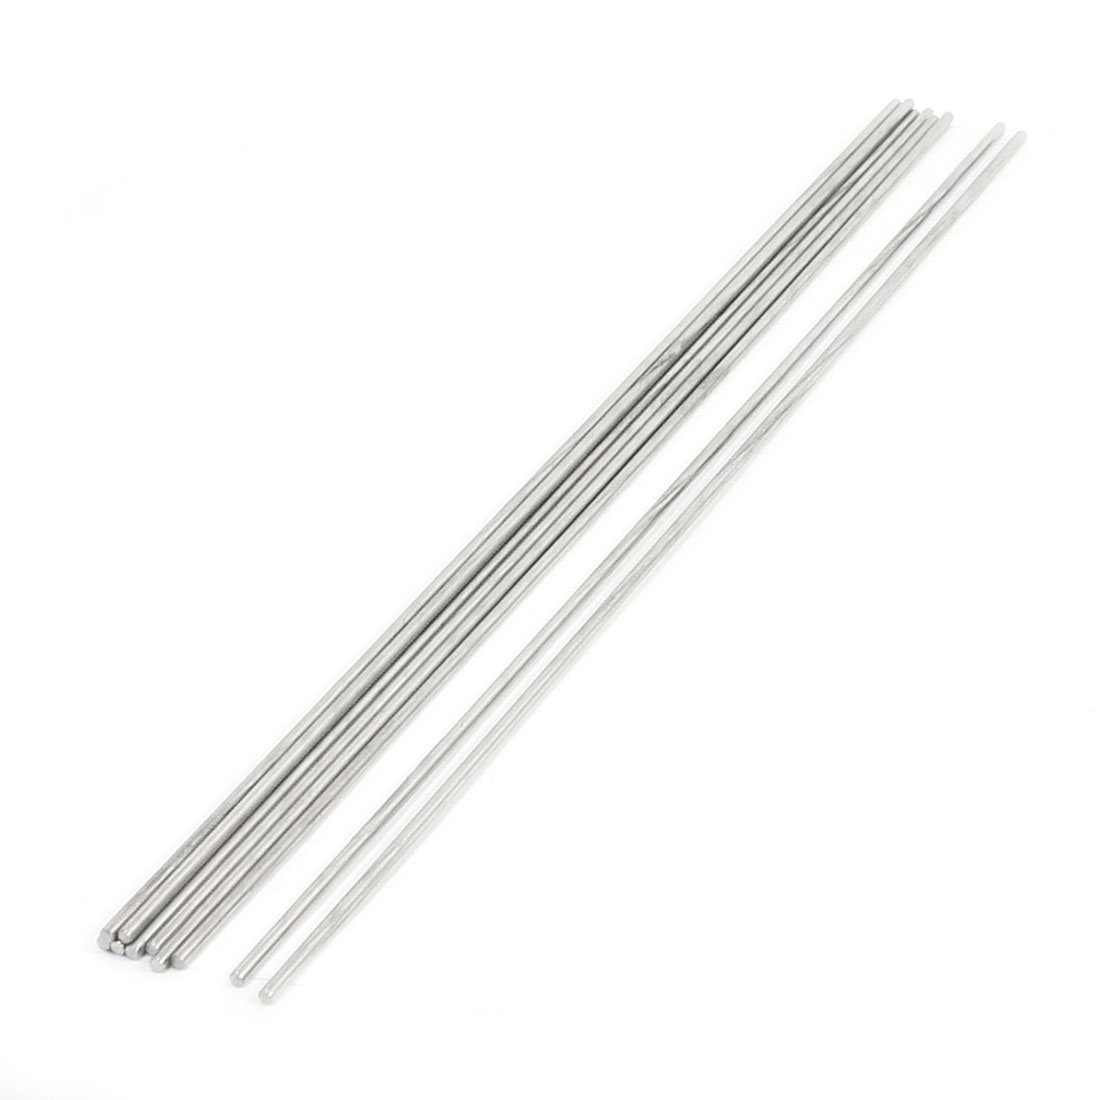 10pcs RC Model Airplane Replacement Stainless Steel Round Bars 300x2mm